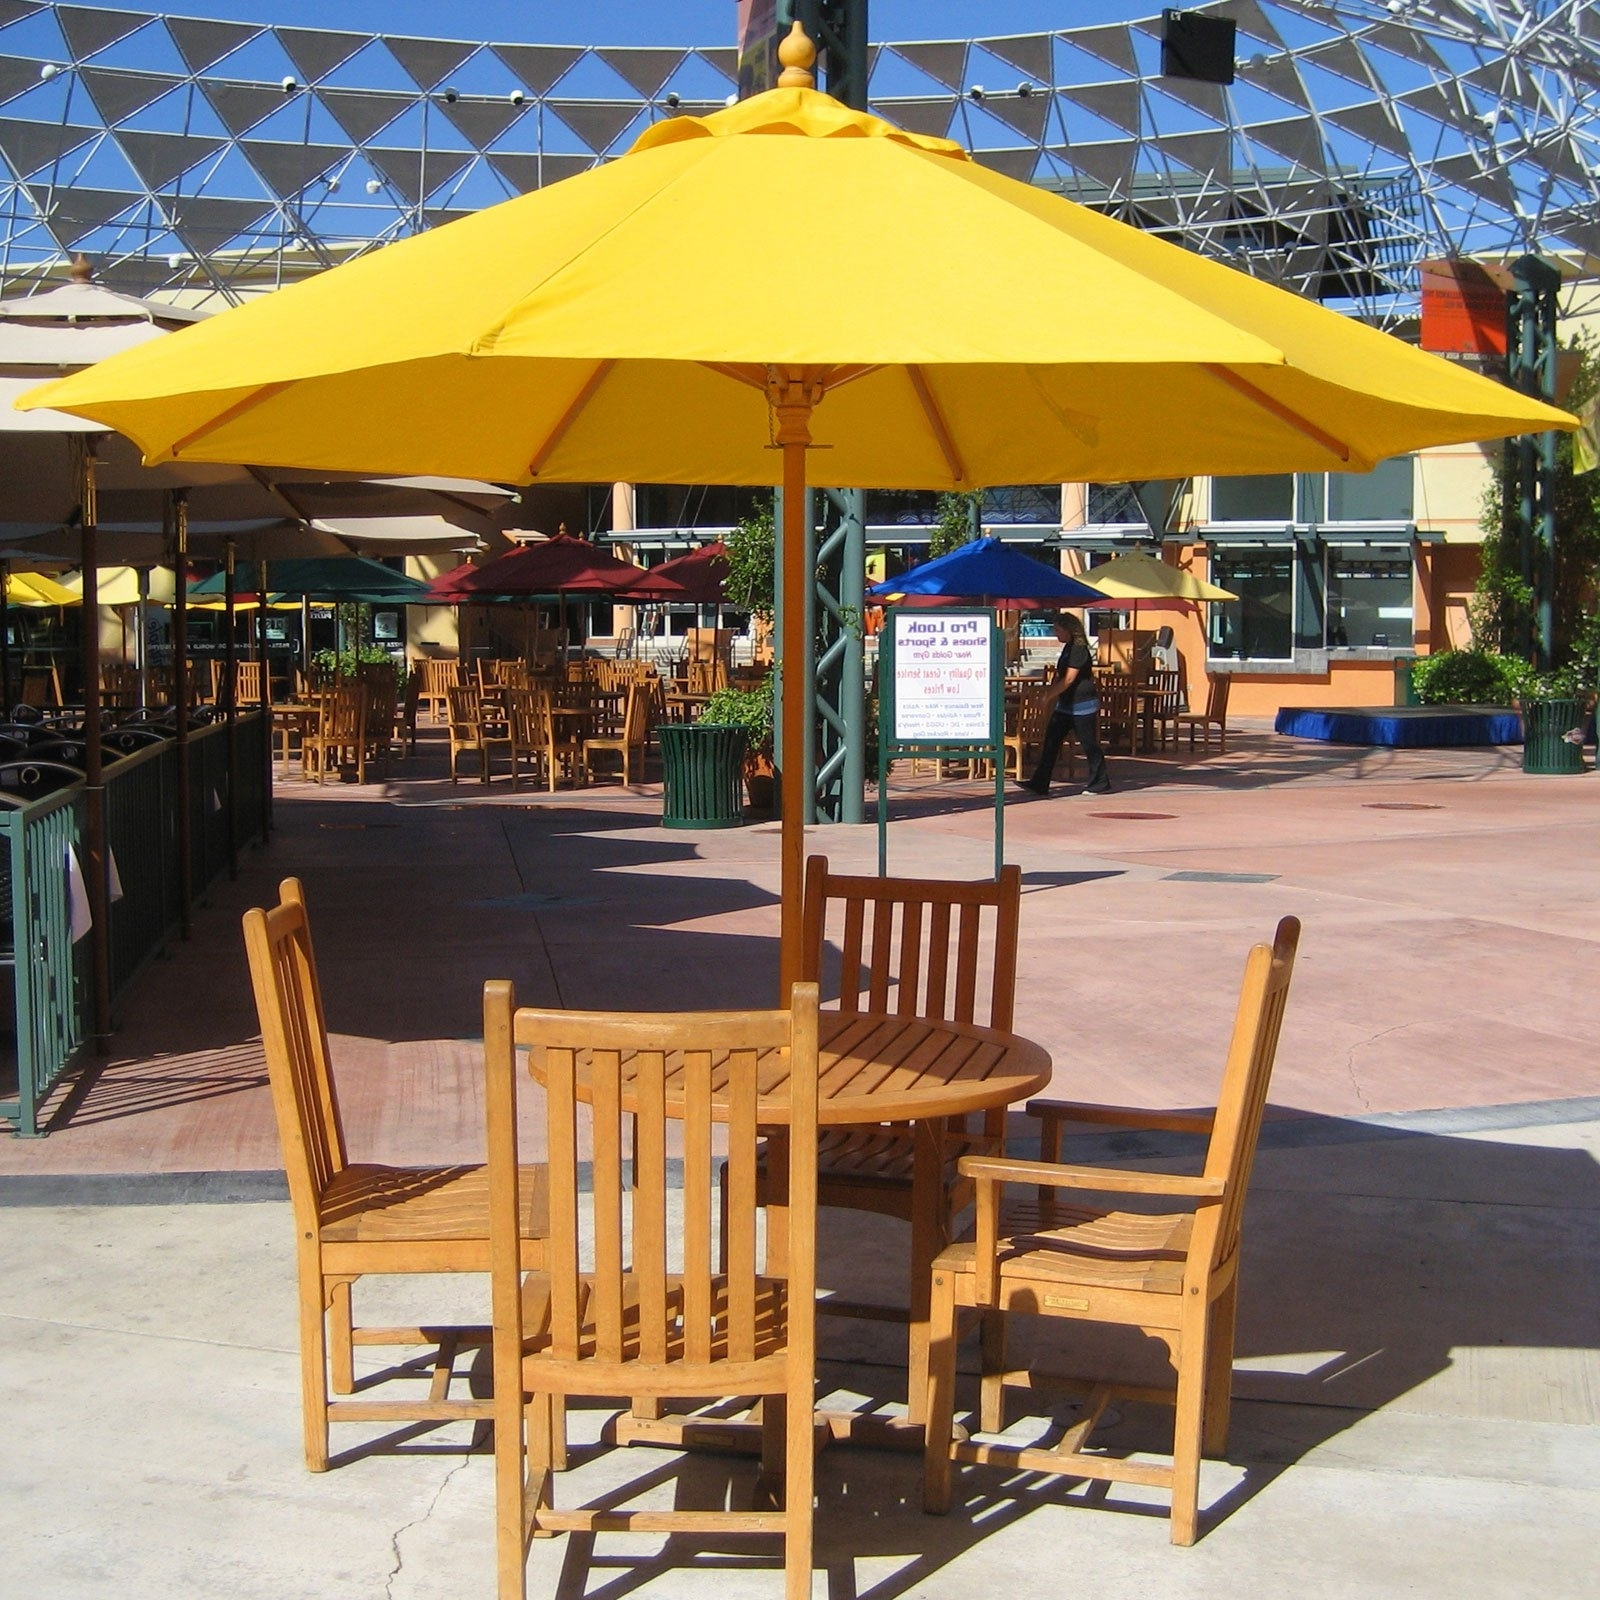 Patio Tables With Umbrellas Pertaining To Recent Tips To Choose Patio Table Umbrella — Inspire Furniture Ideas (Gallery 12 of 20)